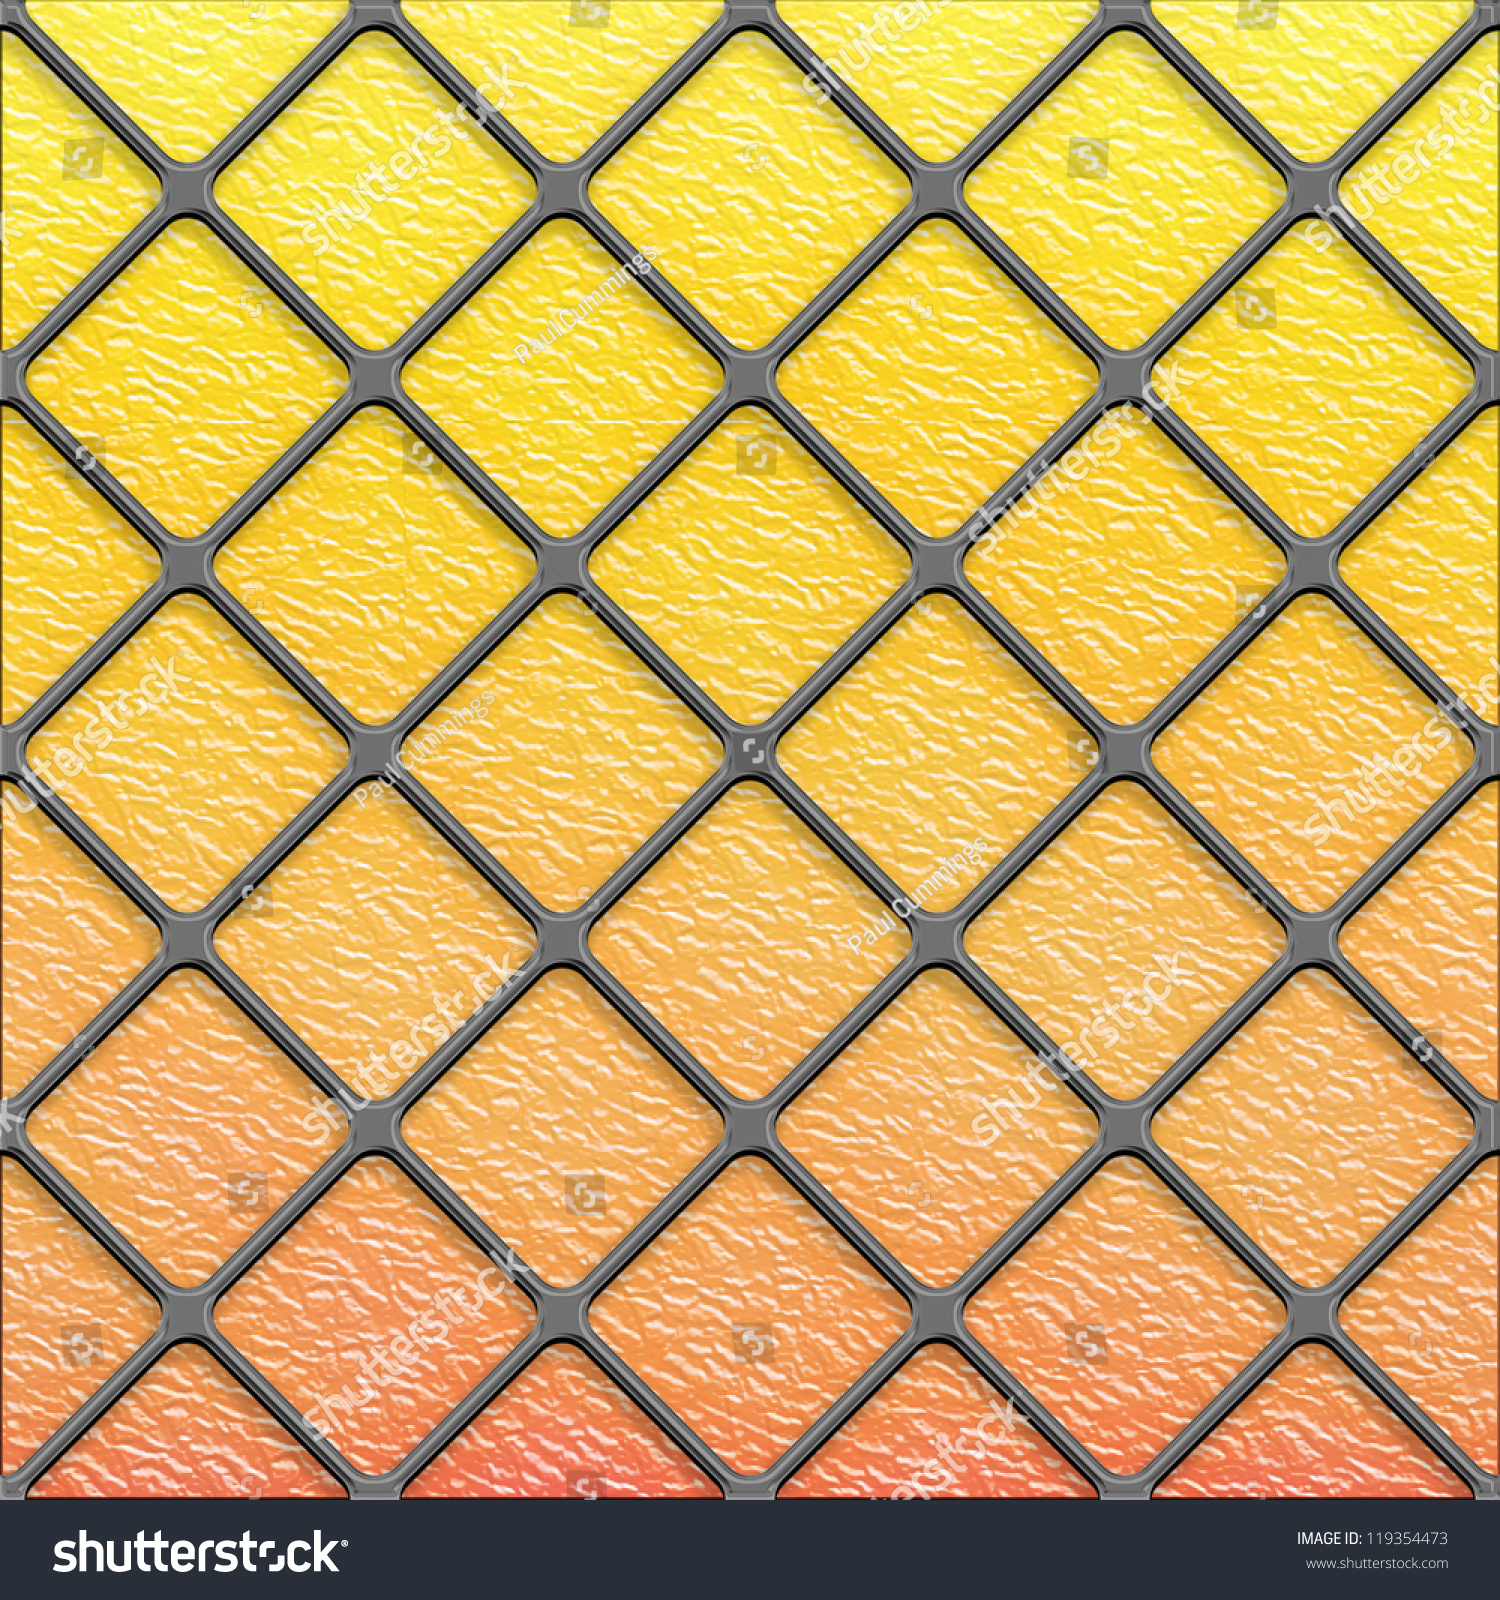 Seamless Golden Diagonal Stained Glass Texture Stock Illustration